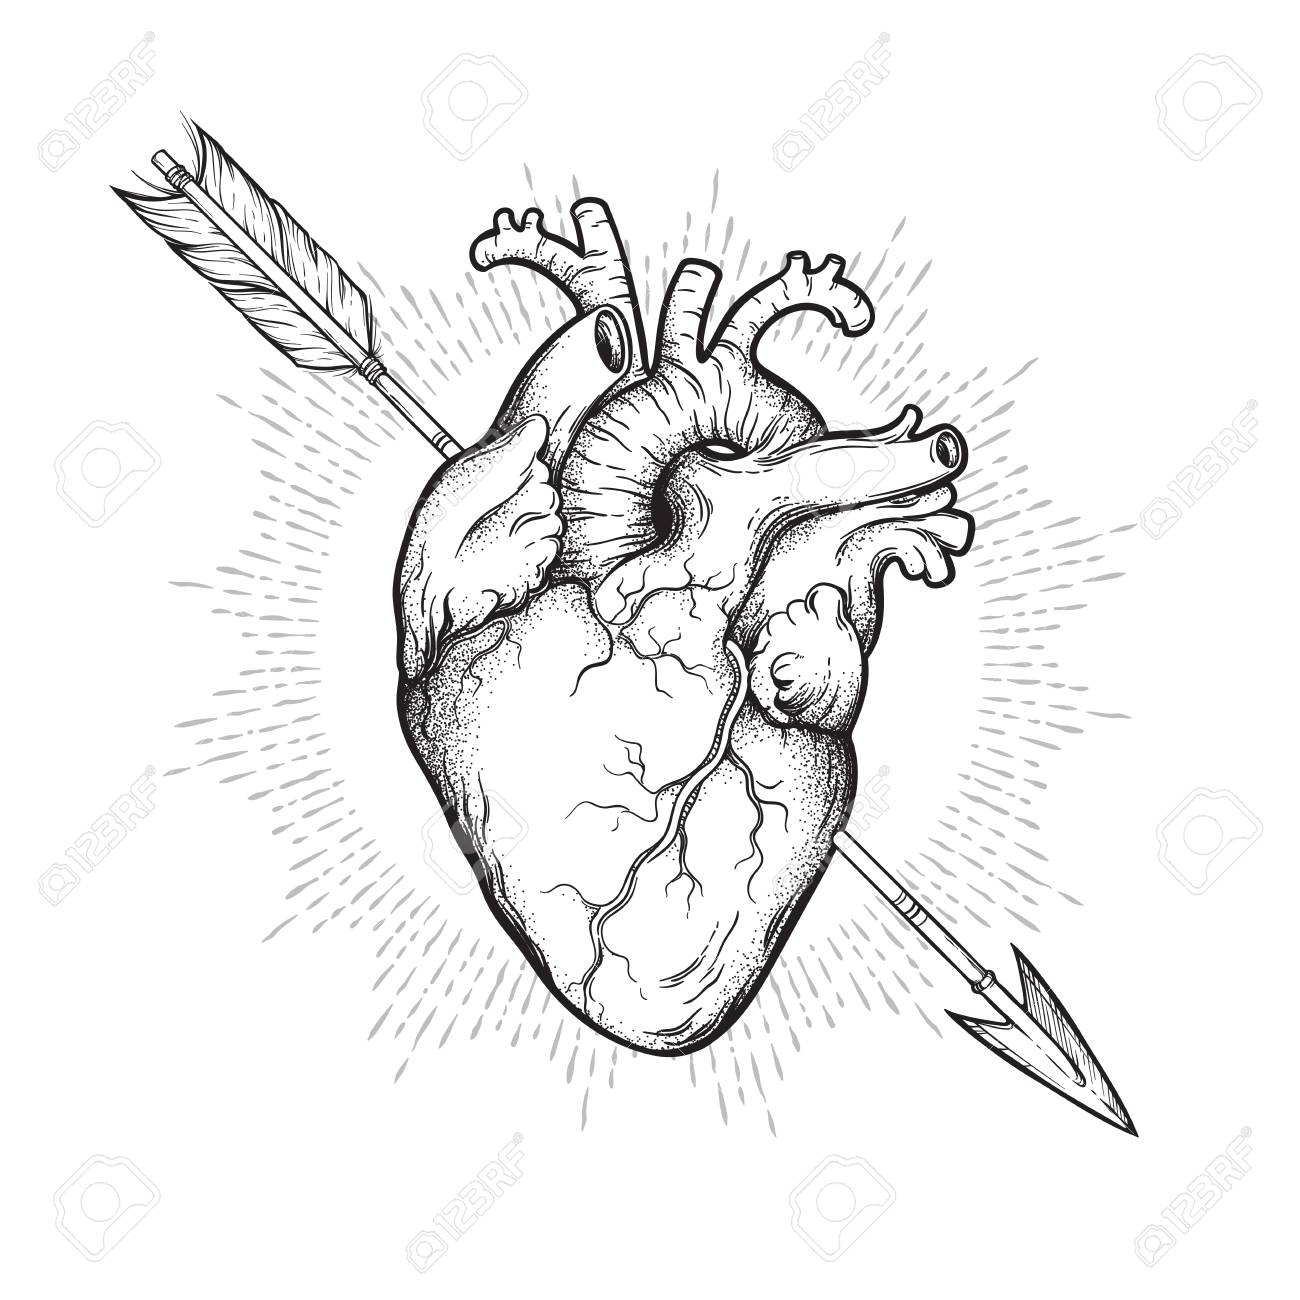 Human Heart Pierced With Cherubs Arrow Hand Drawn Line Art And Royalty Free Cliparts Vectors And Stock Illustration Image 116796960